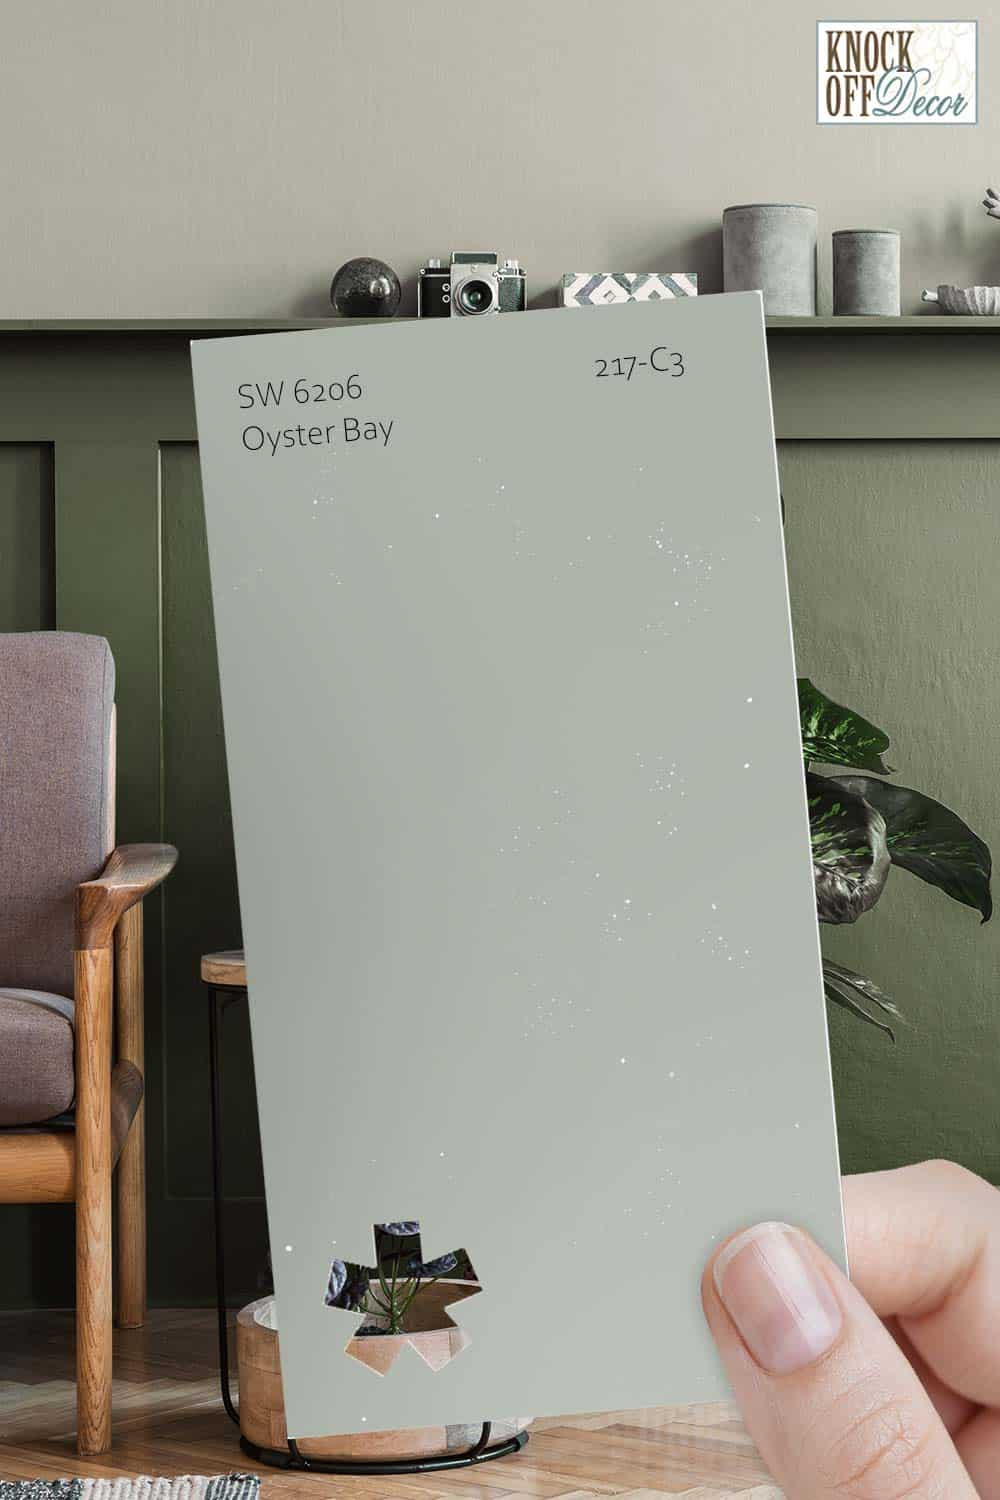 SW single oyster bay chip